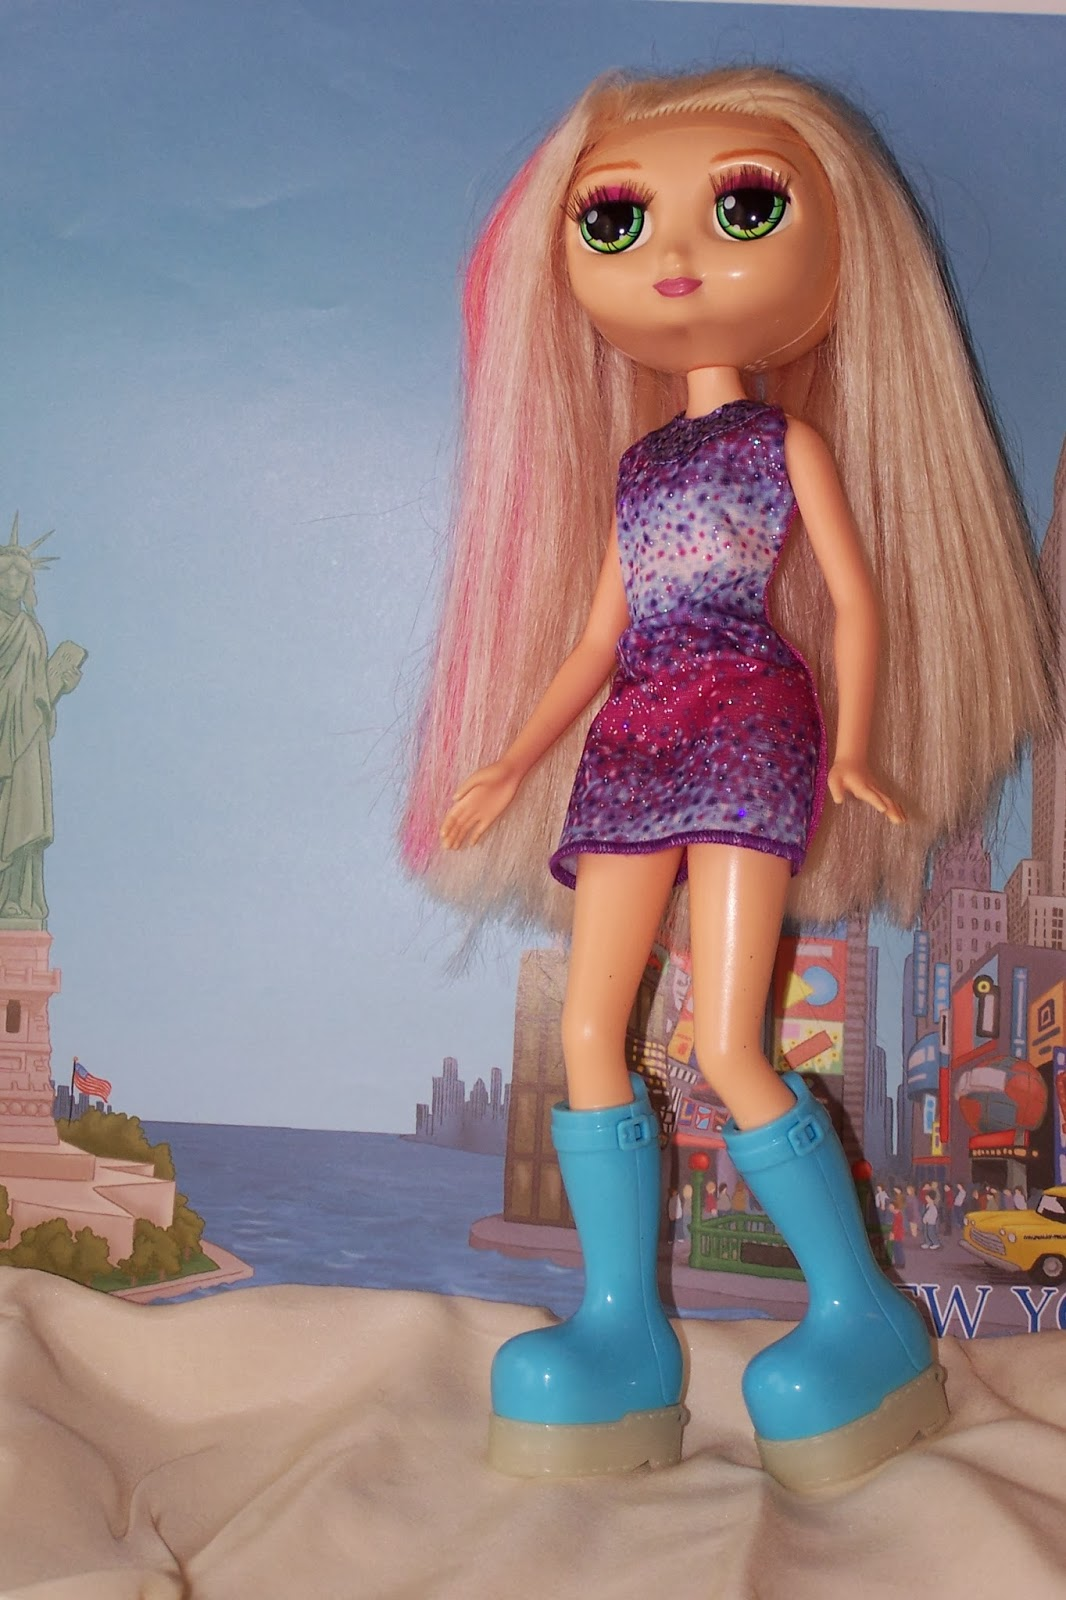 Early 2000s Barbies in The Early 2000's